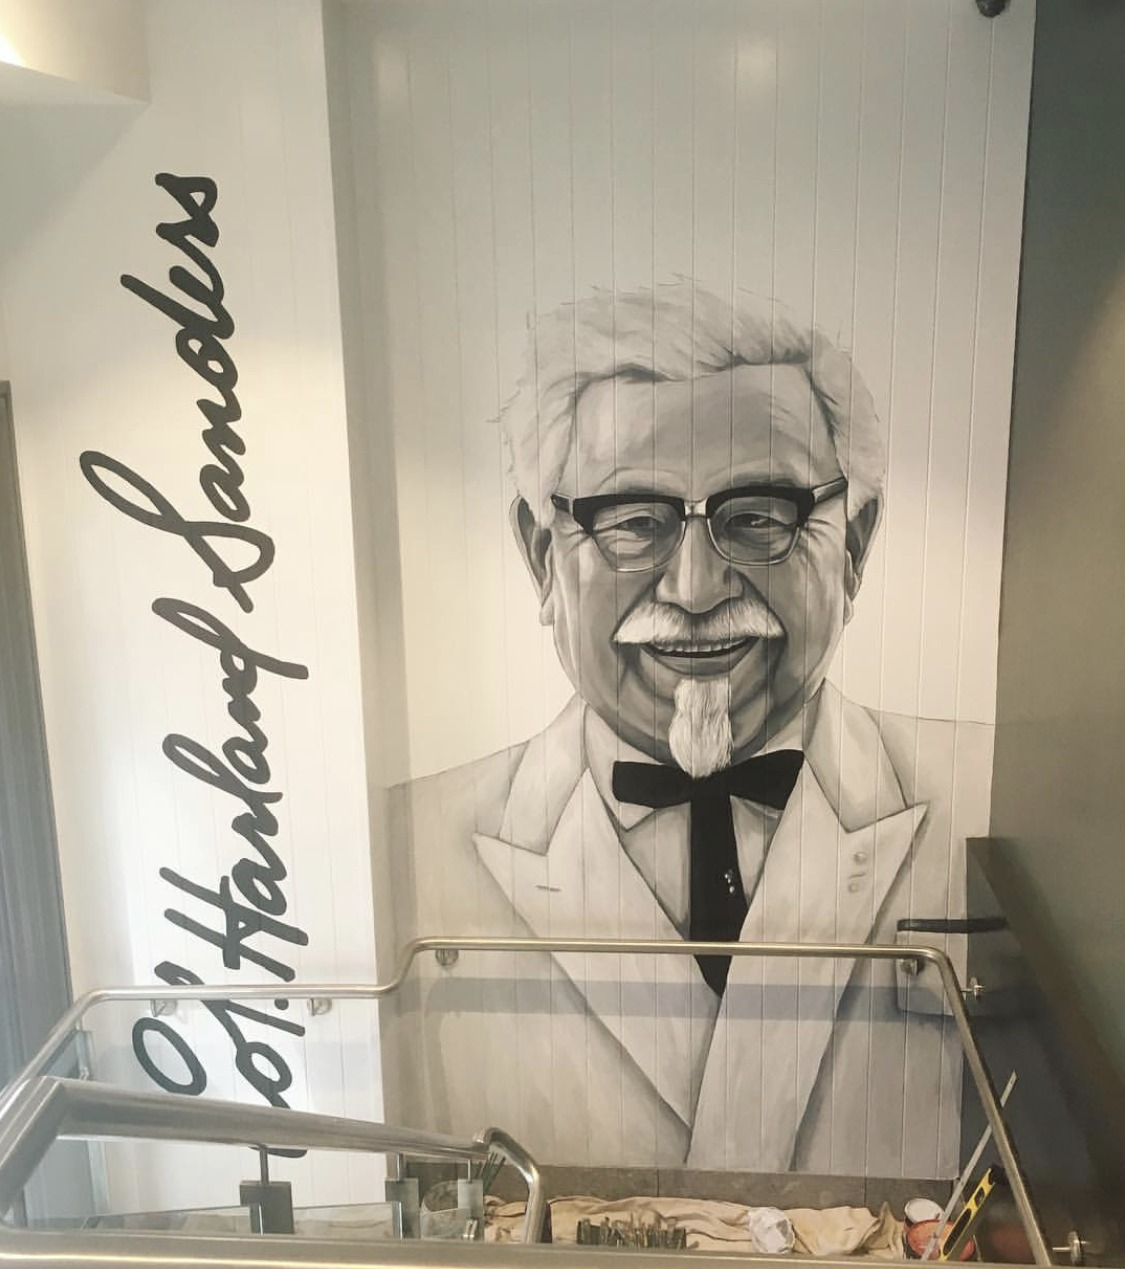 the-art-of-wall-KFC-sydney-colonel-sanders-portrait-mural-painted-by-artist-Stacey-Keating3